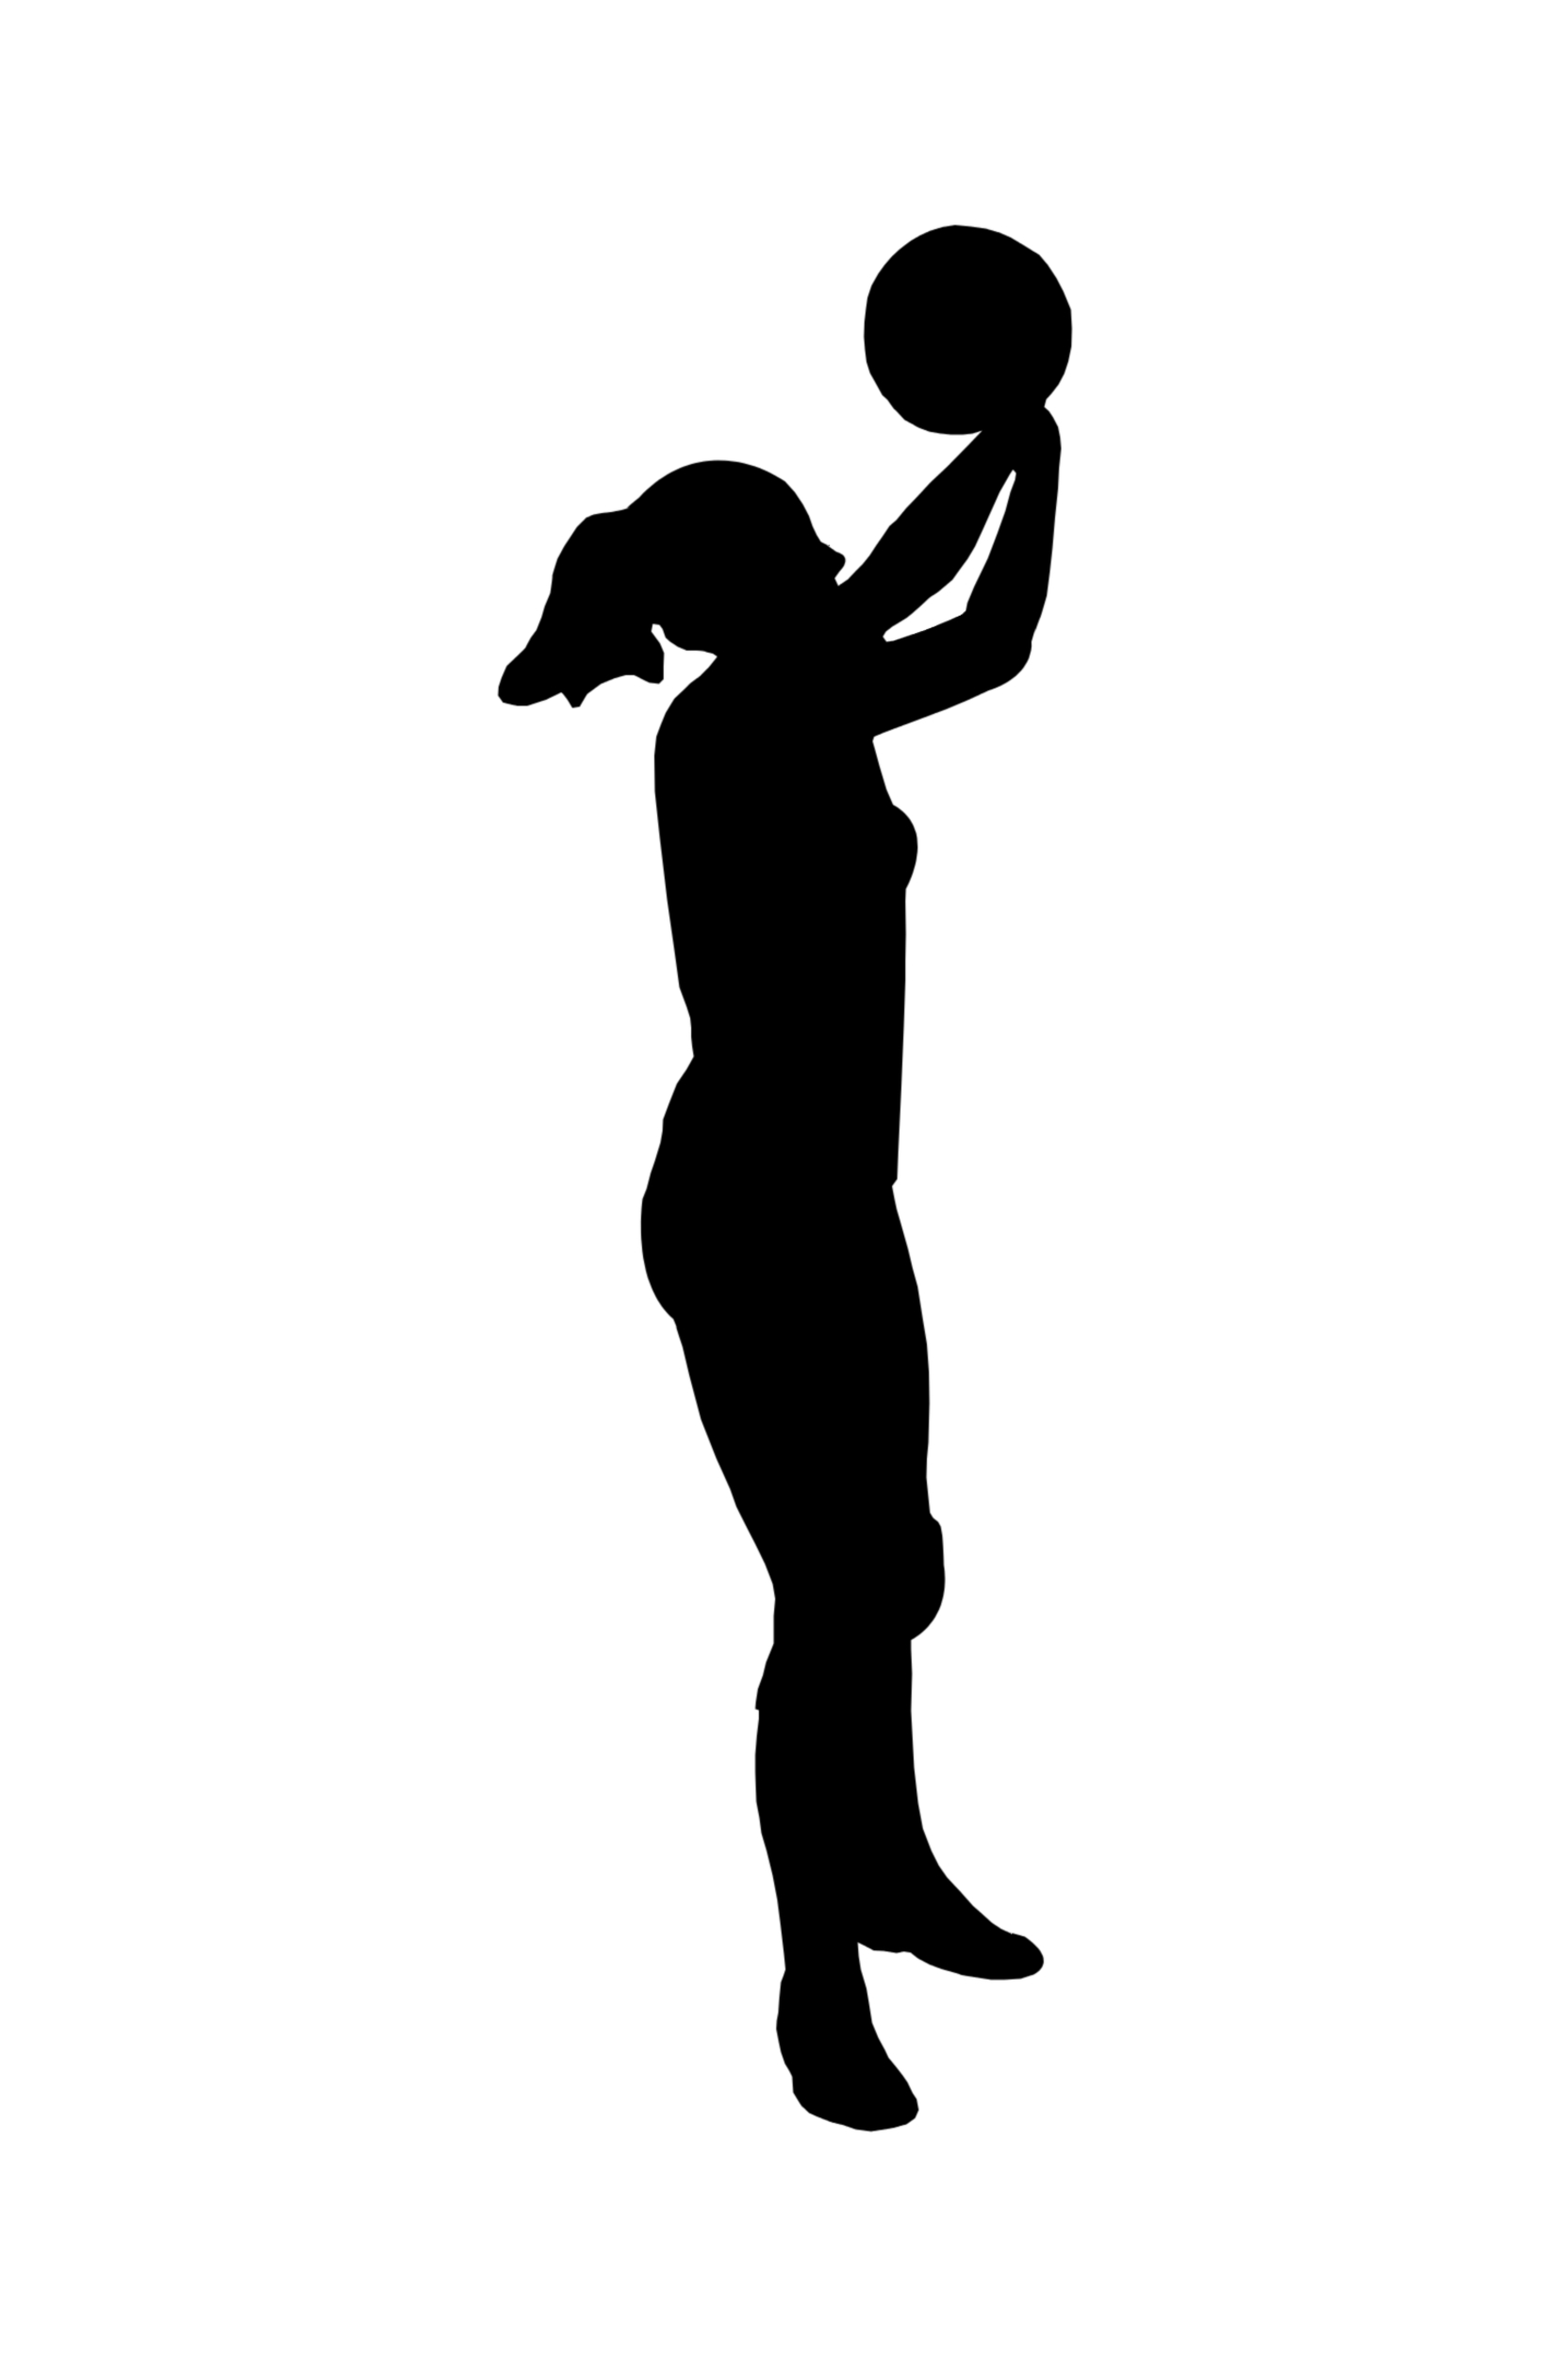 Girl Basketball Player Outline Clipart Free Clip Art Images